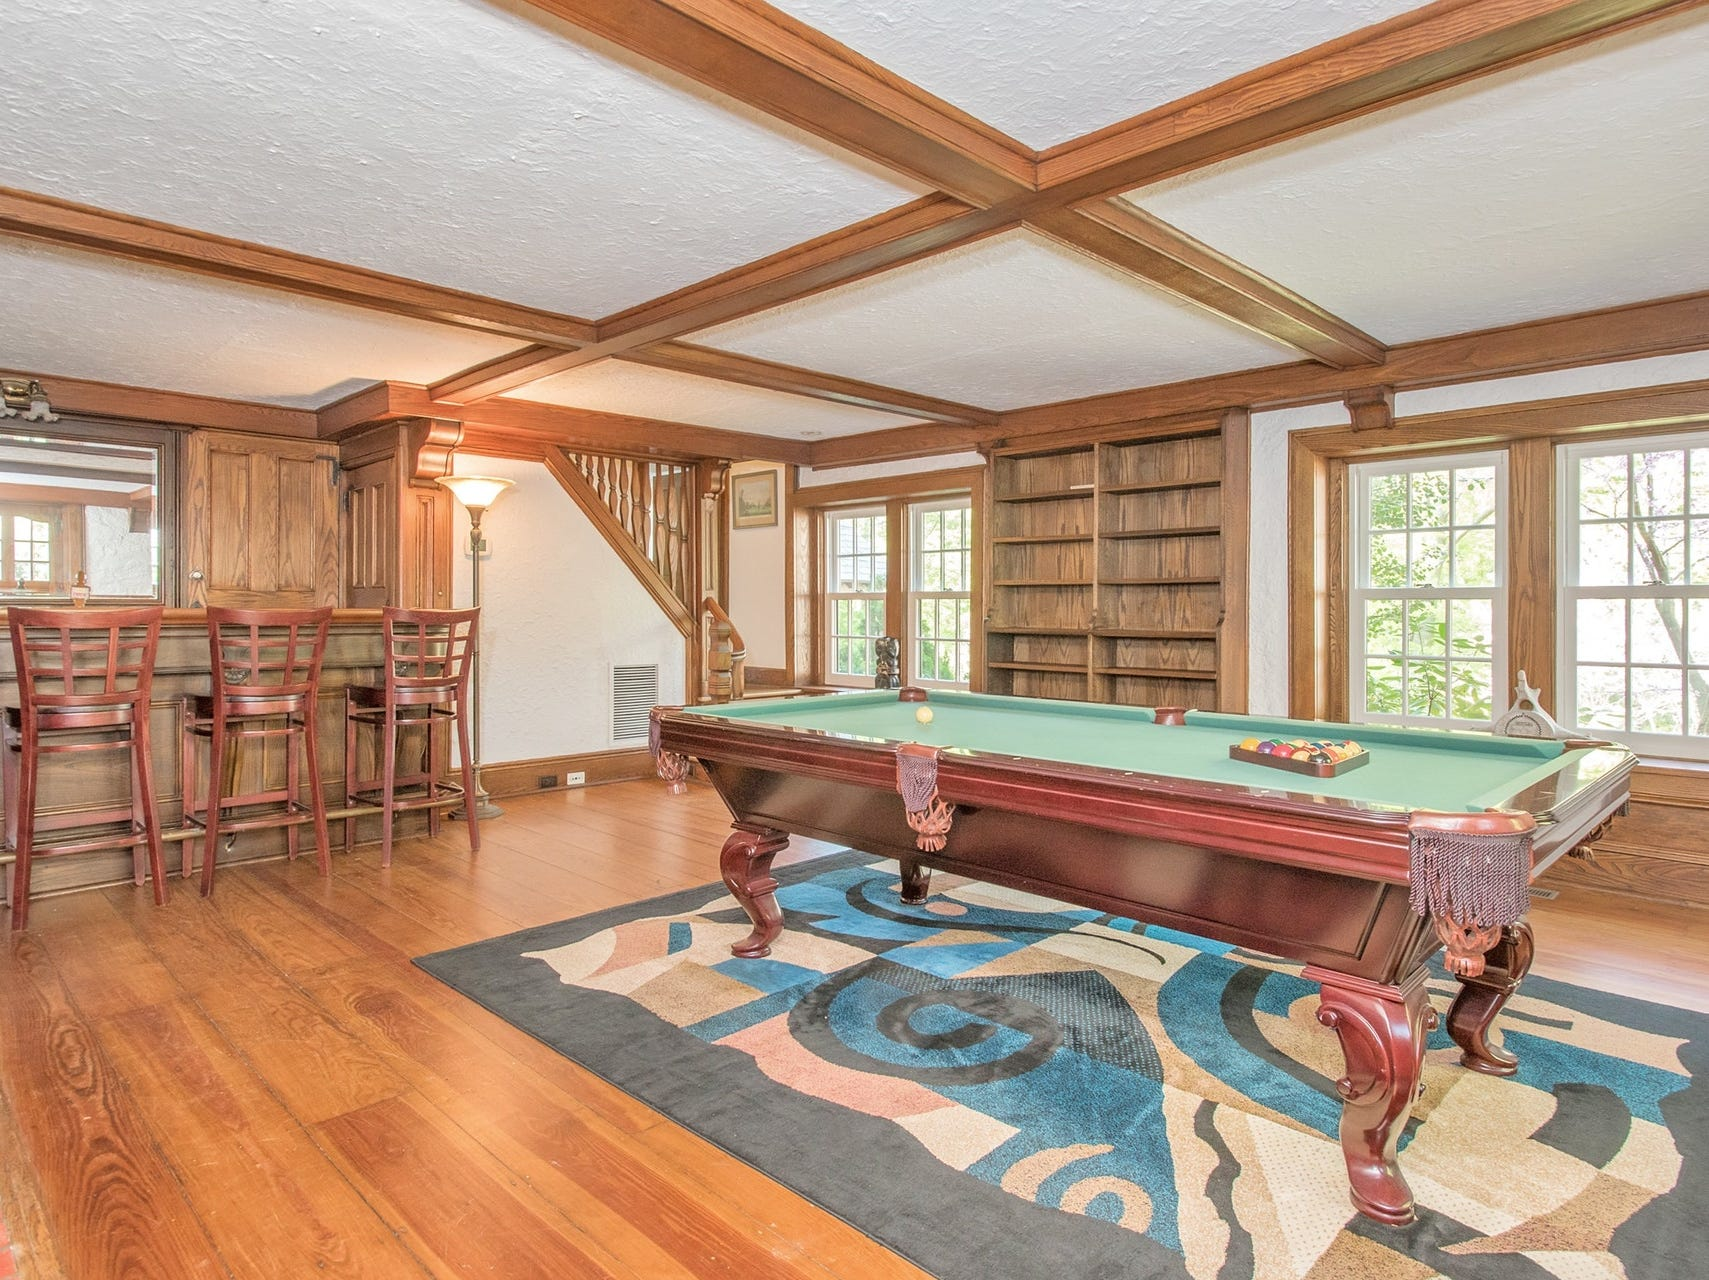 The lower level billiards room has an original hardwood door.